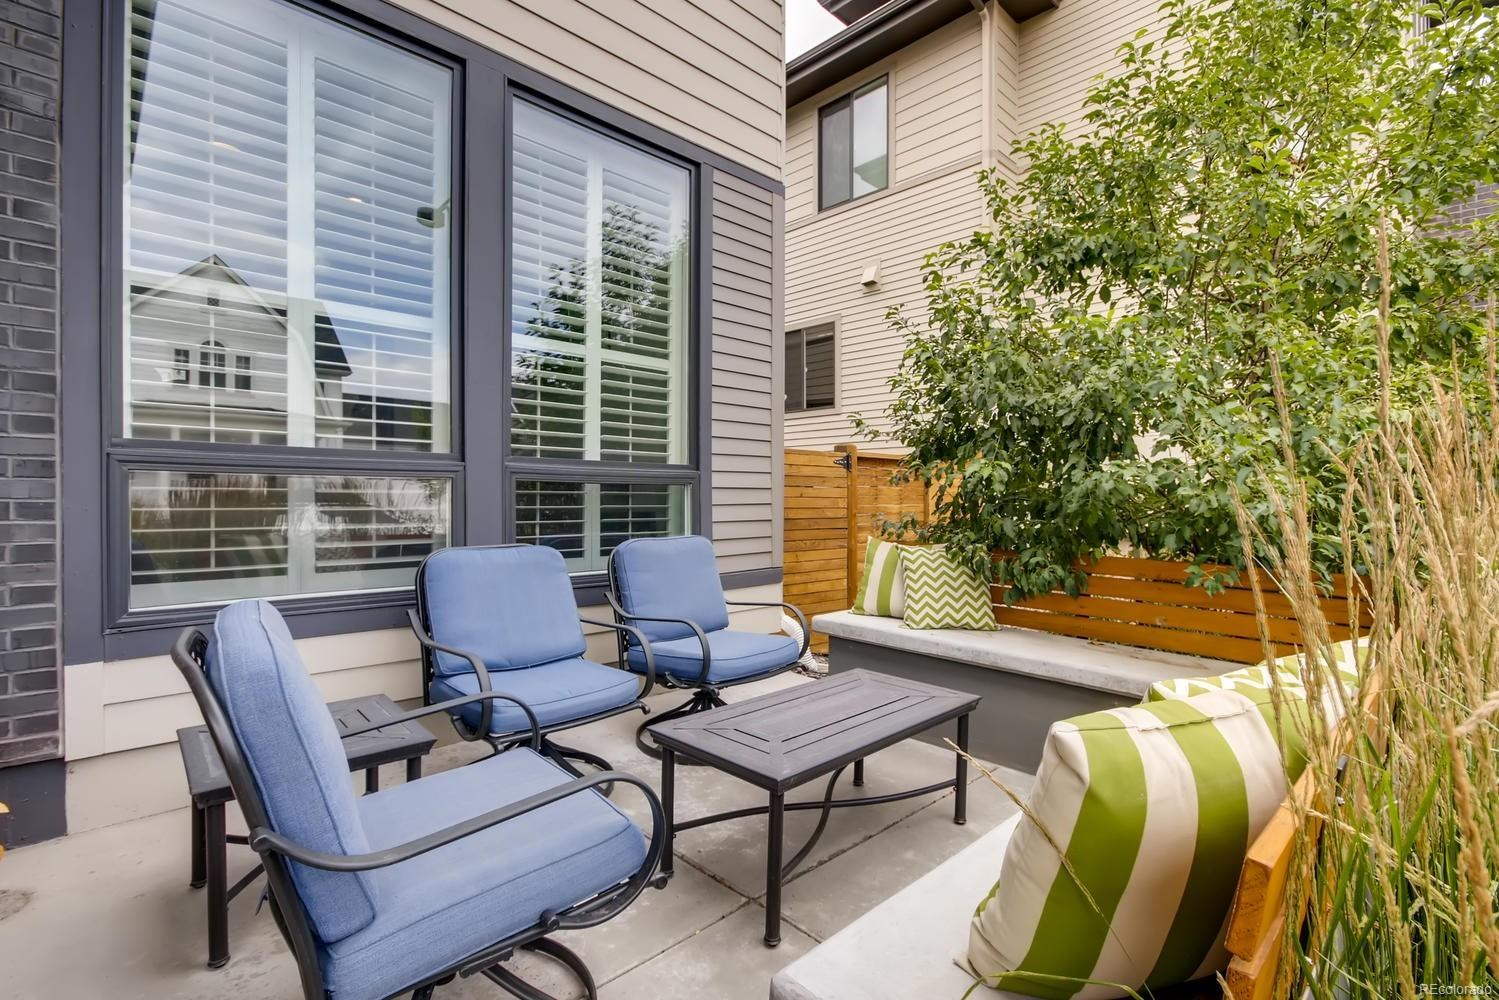 MLS# 3898761 - 2 - 8901 E 52nd Place, Denver, CO 80238